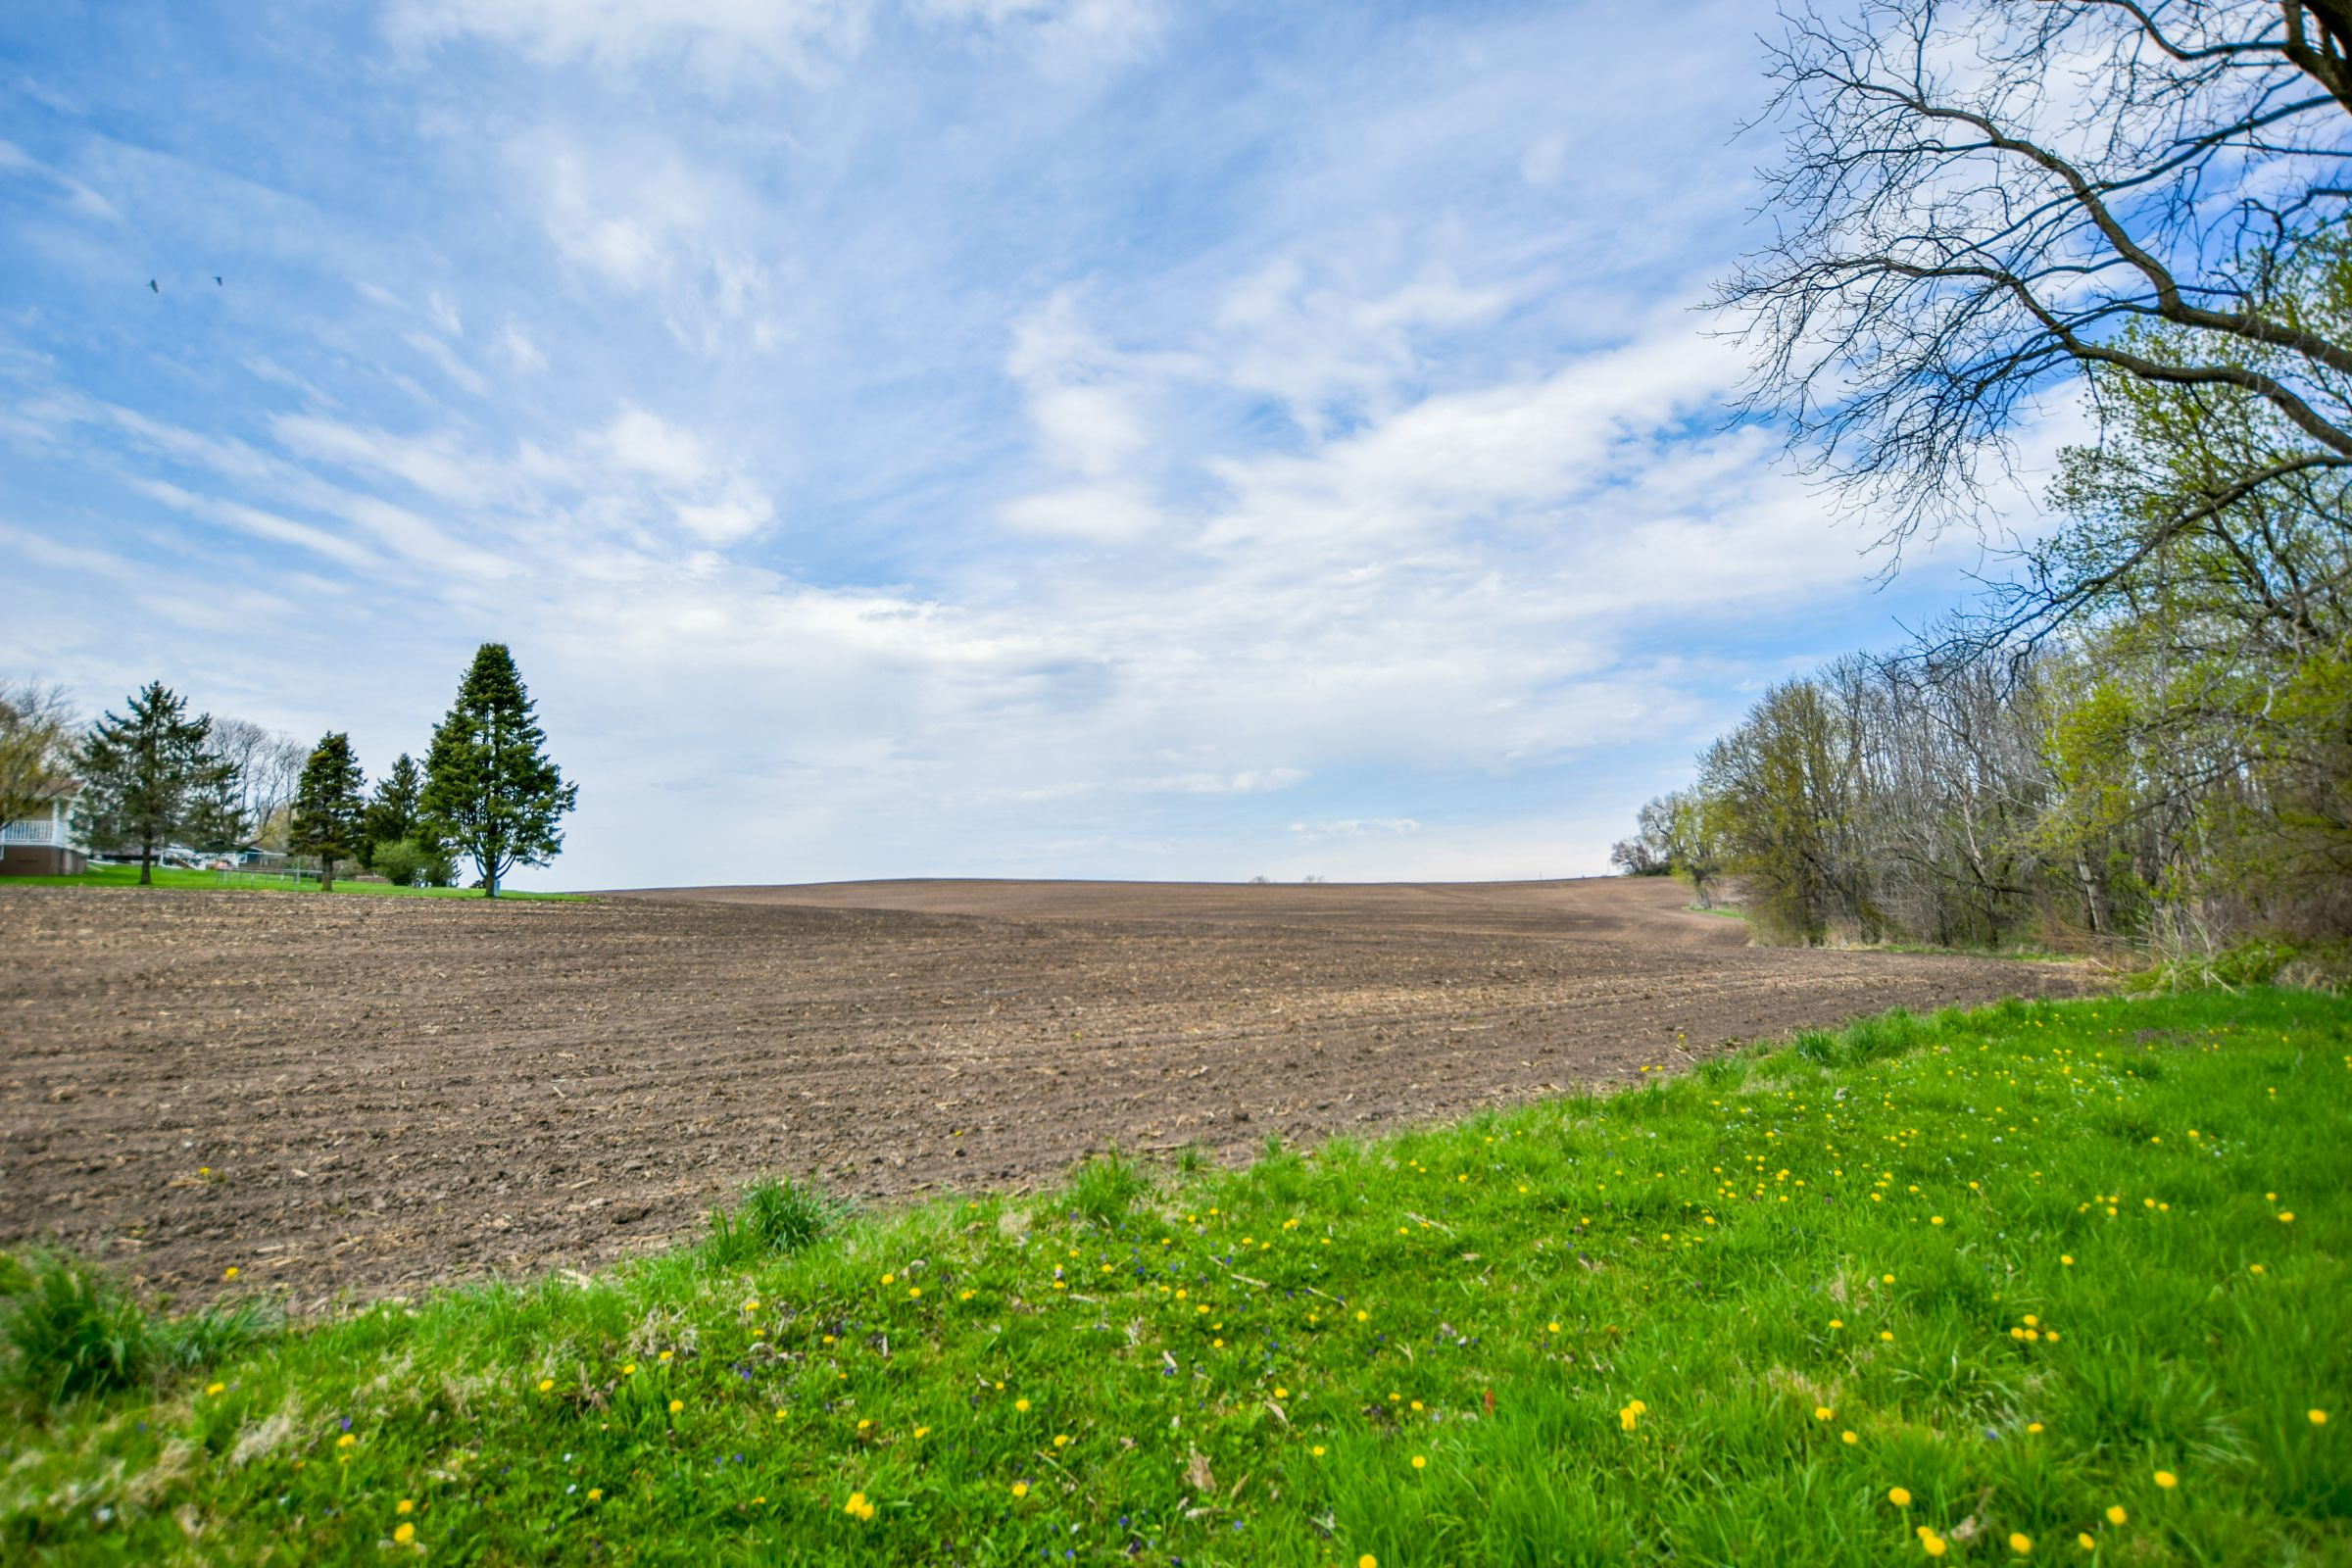 development-land-commercial-iowa-county-wisconsin-152-acres-listing-number-15474-3-2021-05-18-165929.jpg